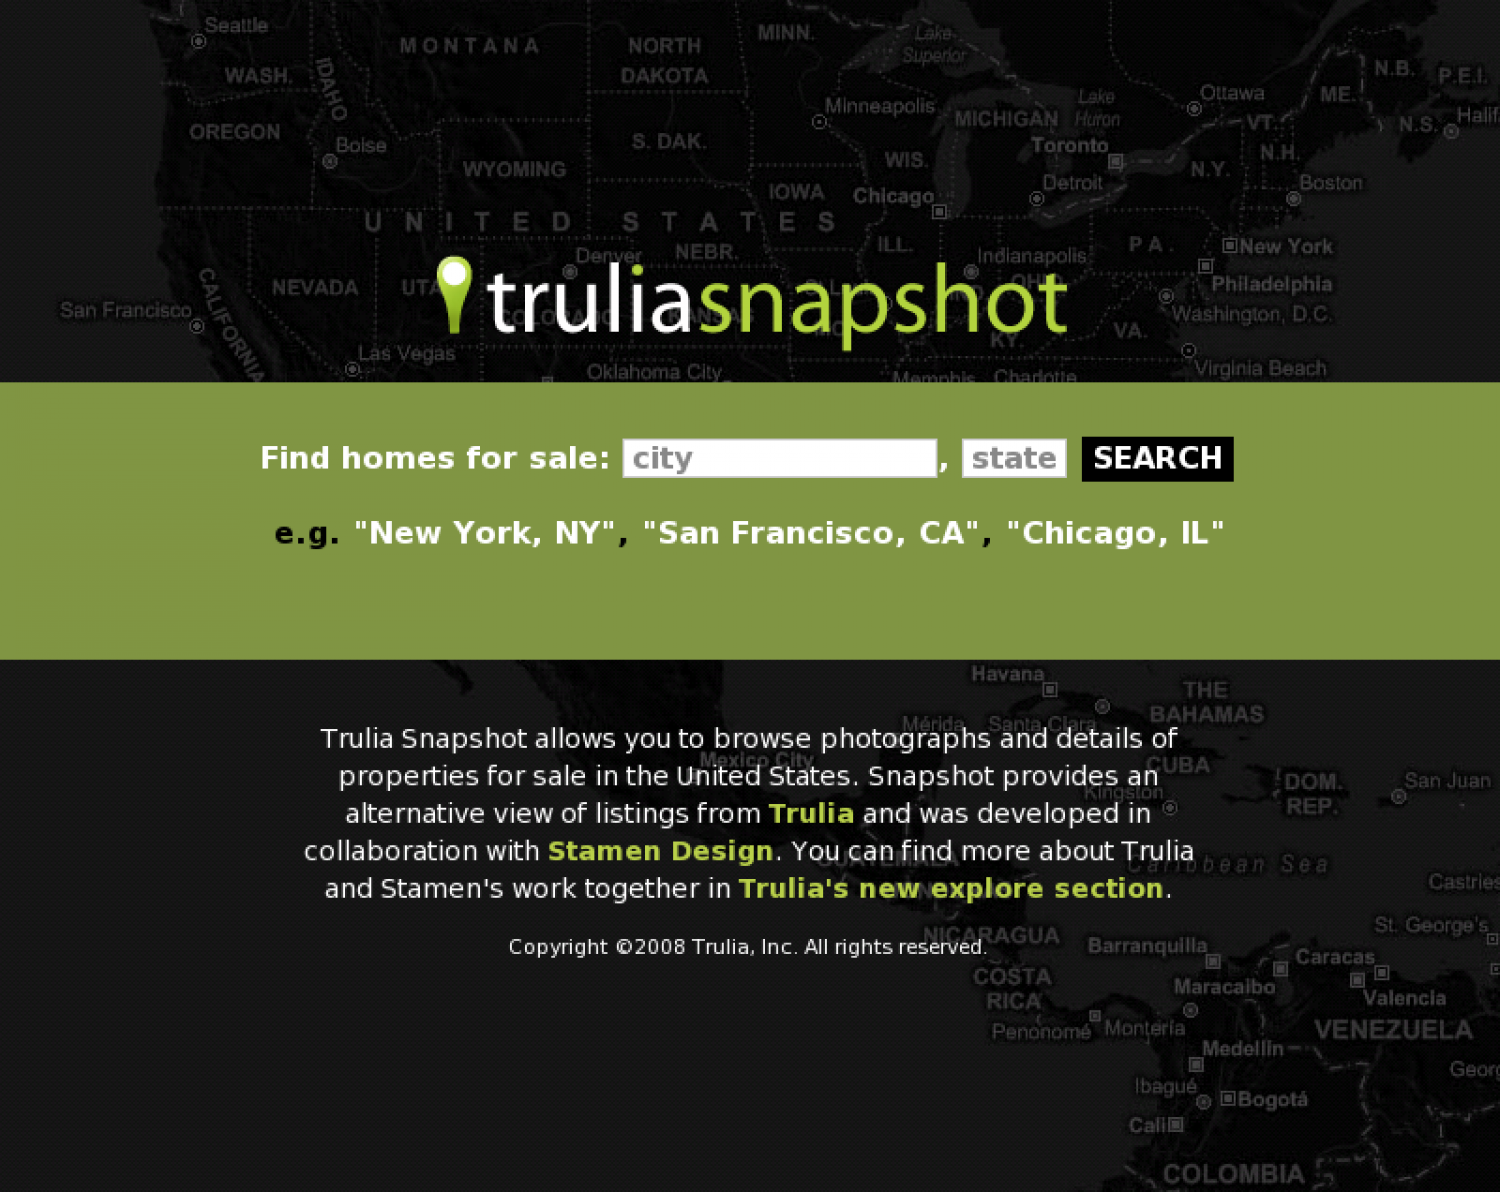 Trulia Snapshot Infographic